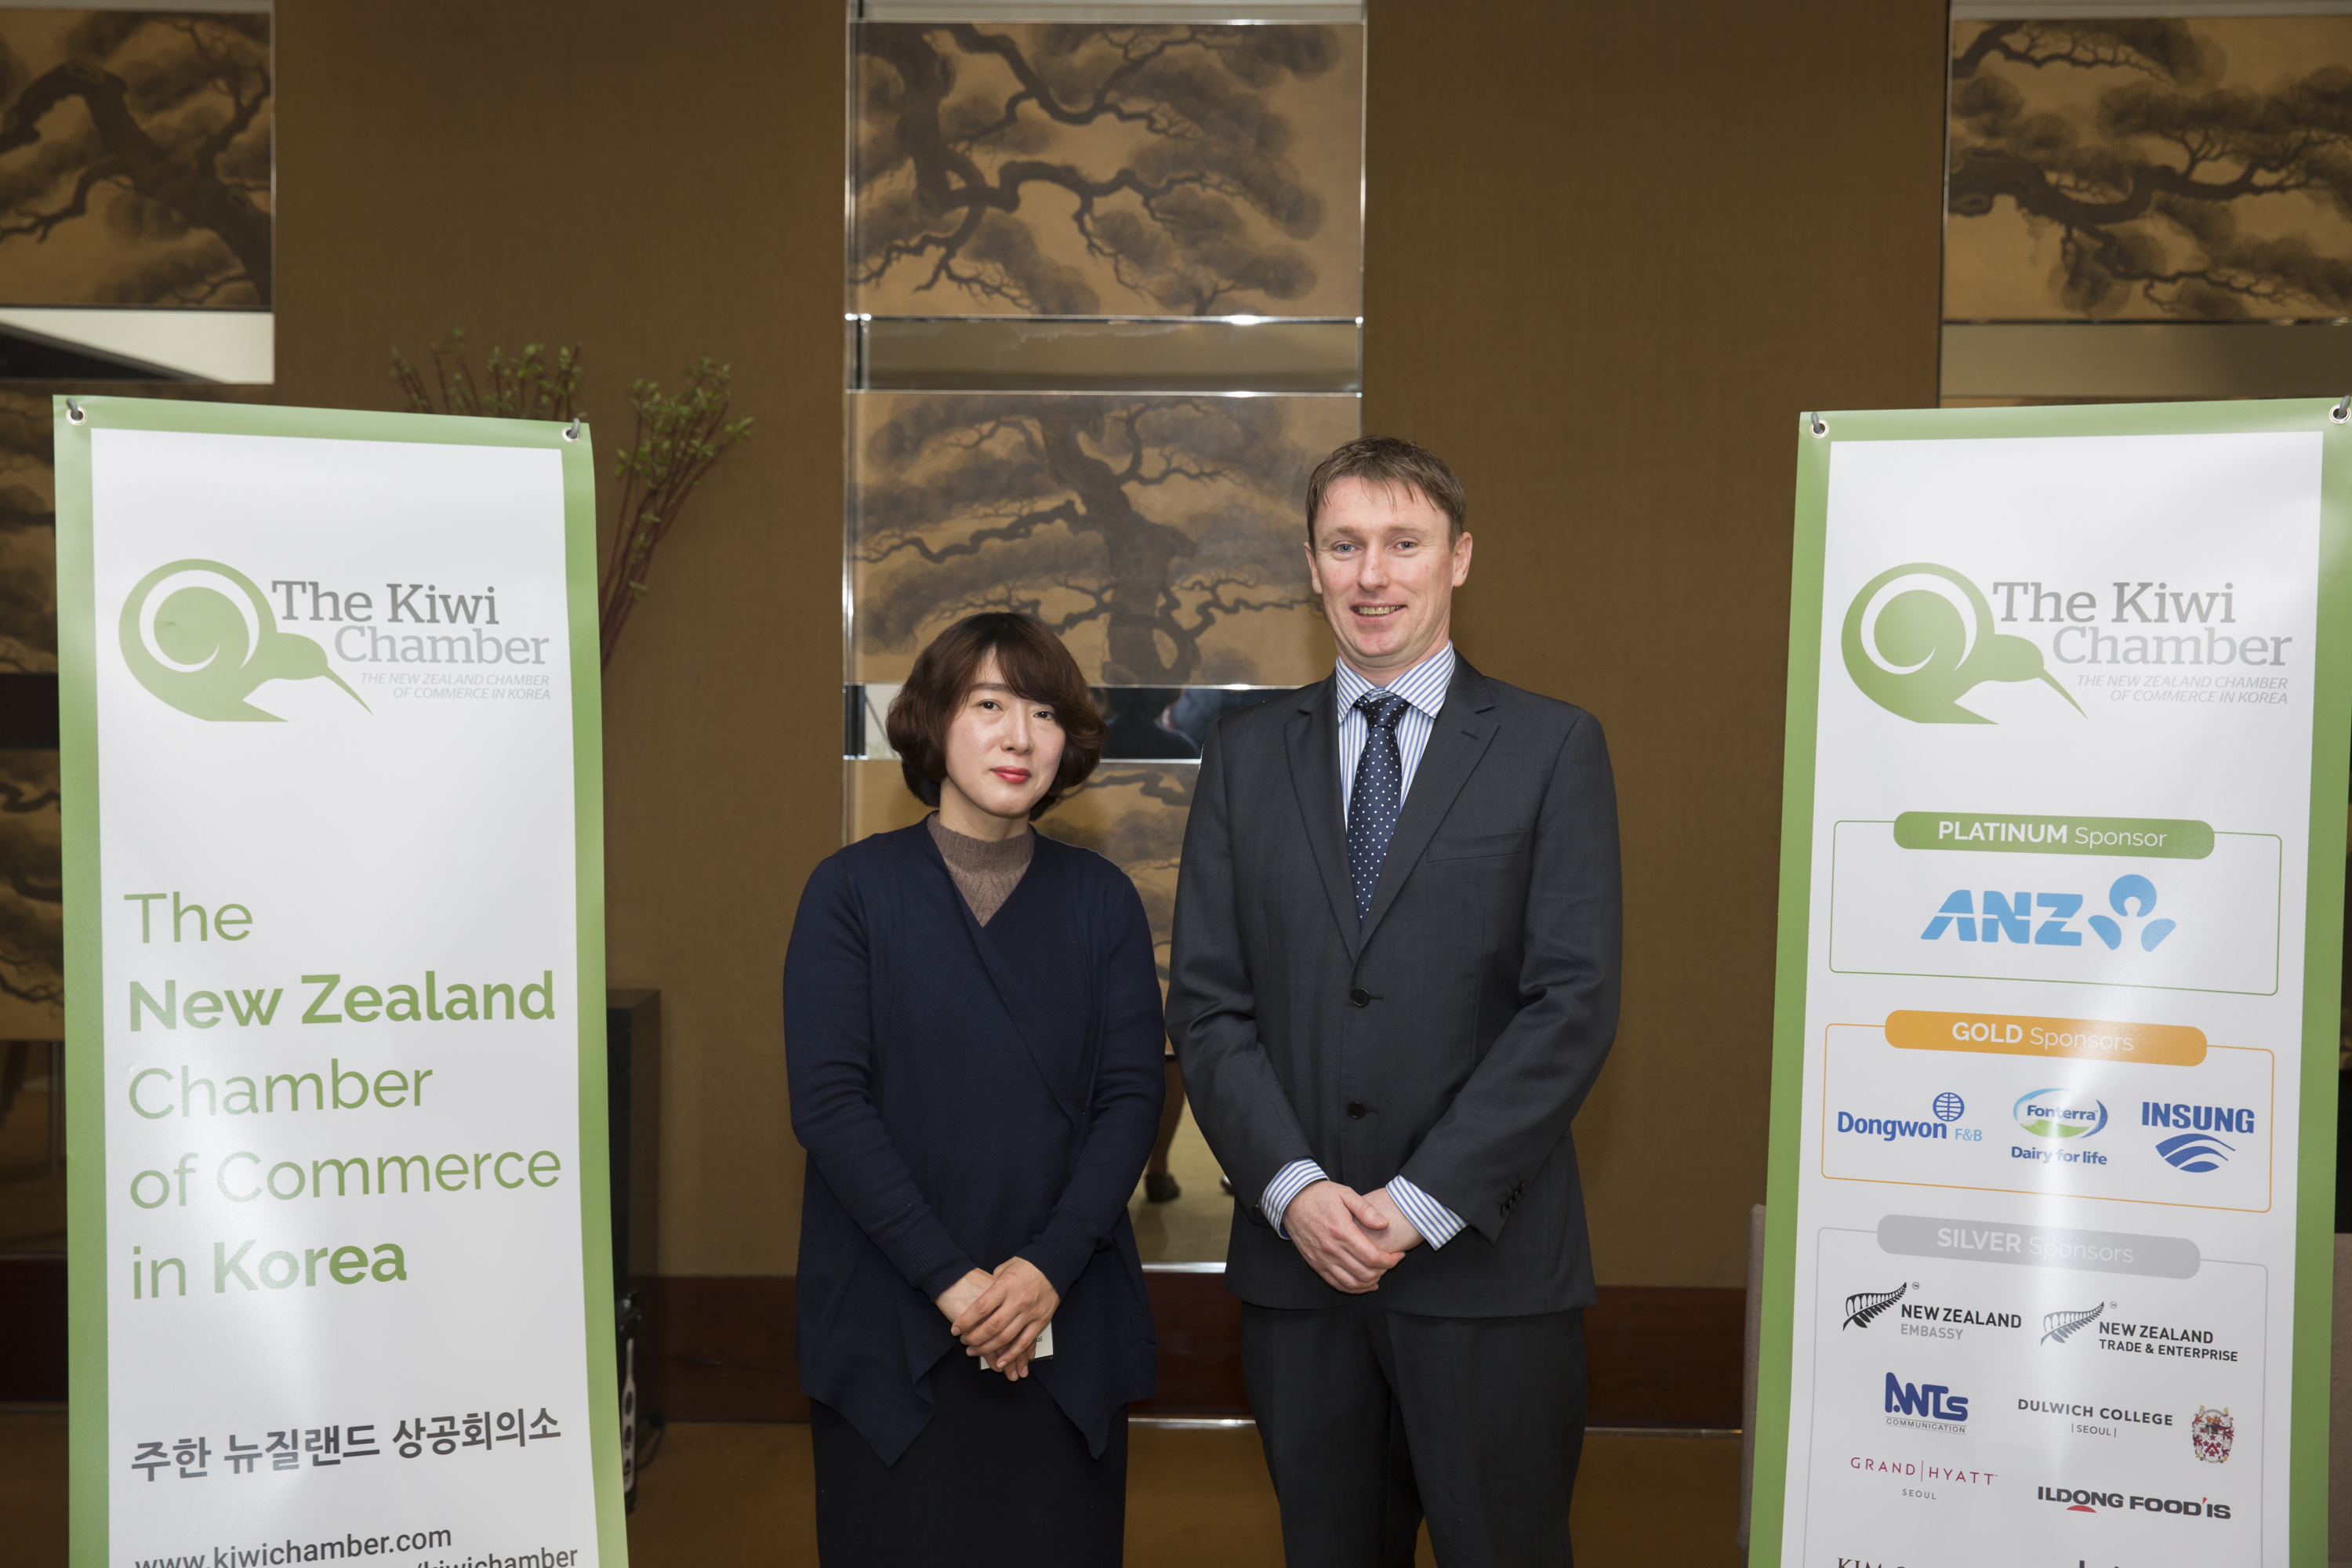 Jason Murney, Country Manager, Fonterra, and Min Dle Le, Market Manager, Zespri International, pose at The Kiwi Chamber Inspire with Innovation Series at the Grand Hyatt Seoul on March 21, 2017.